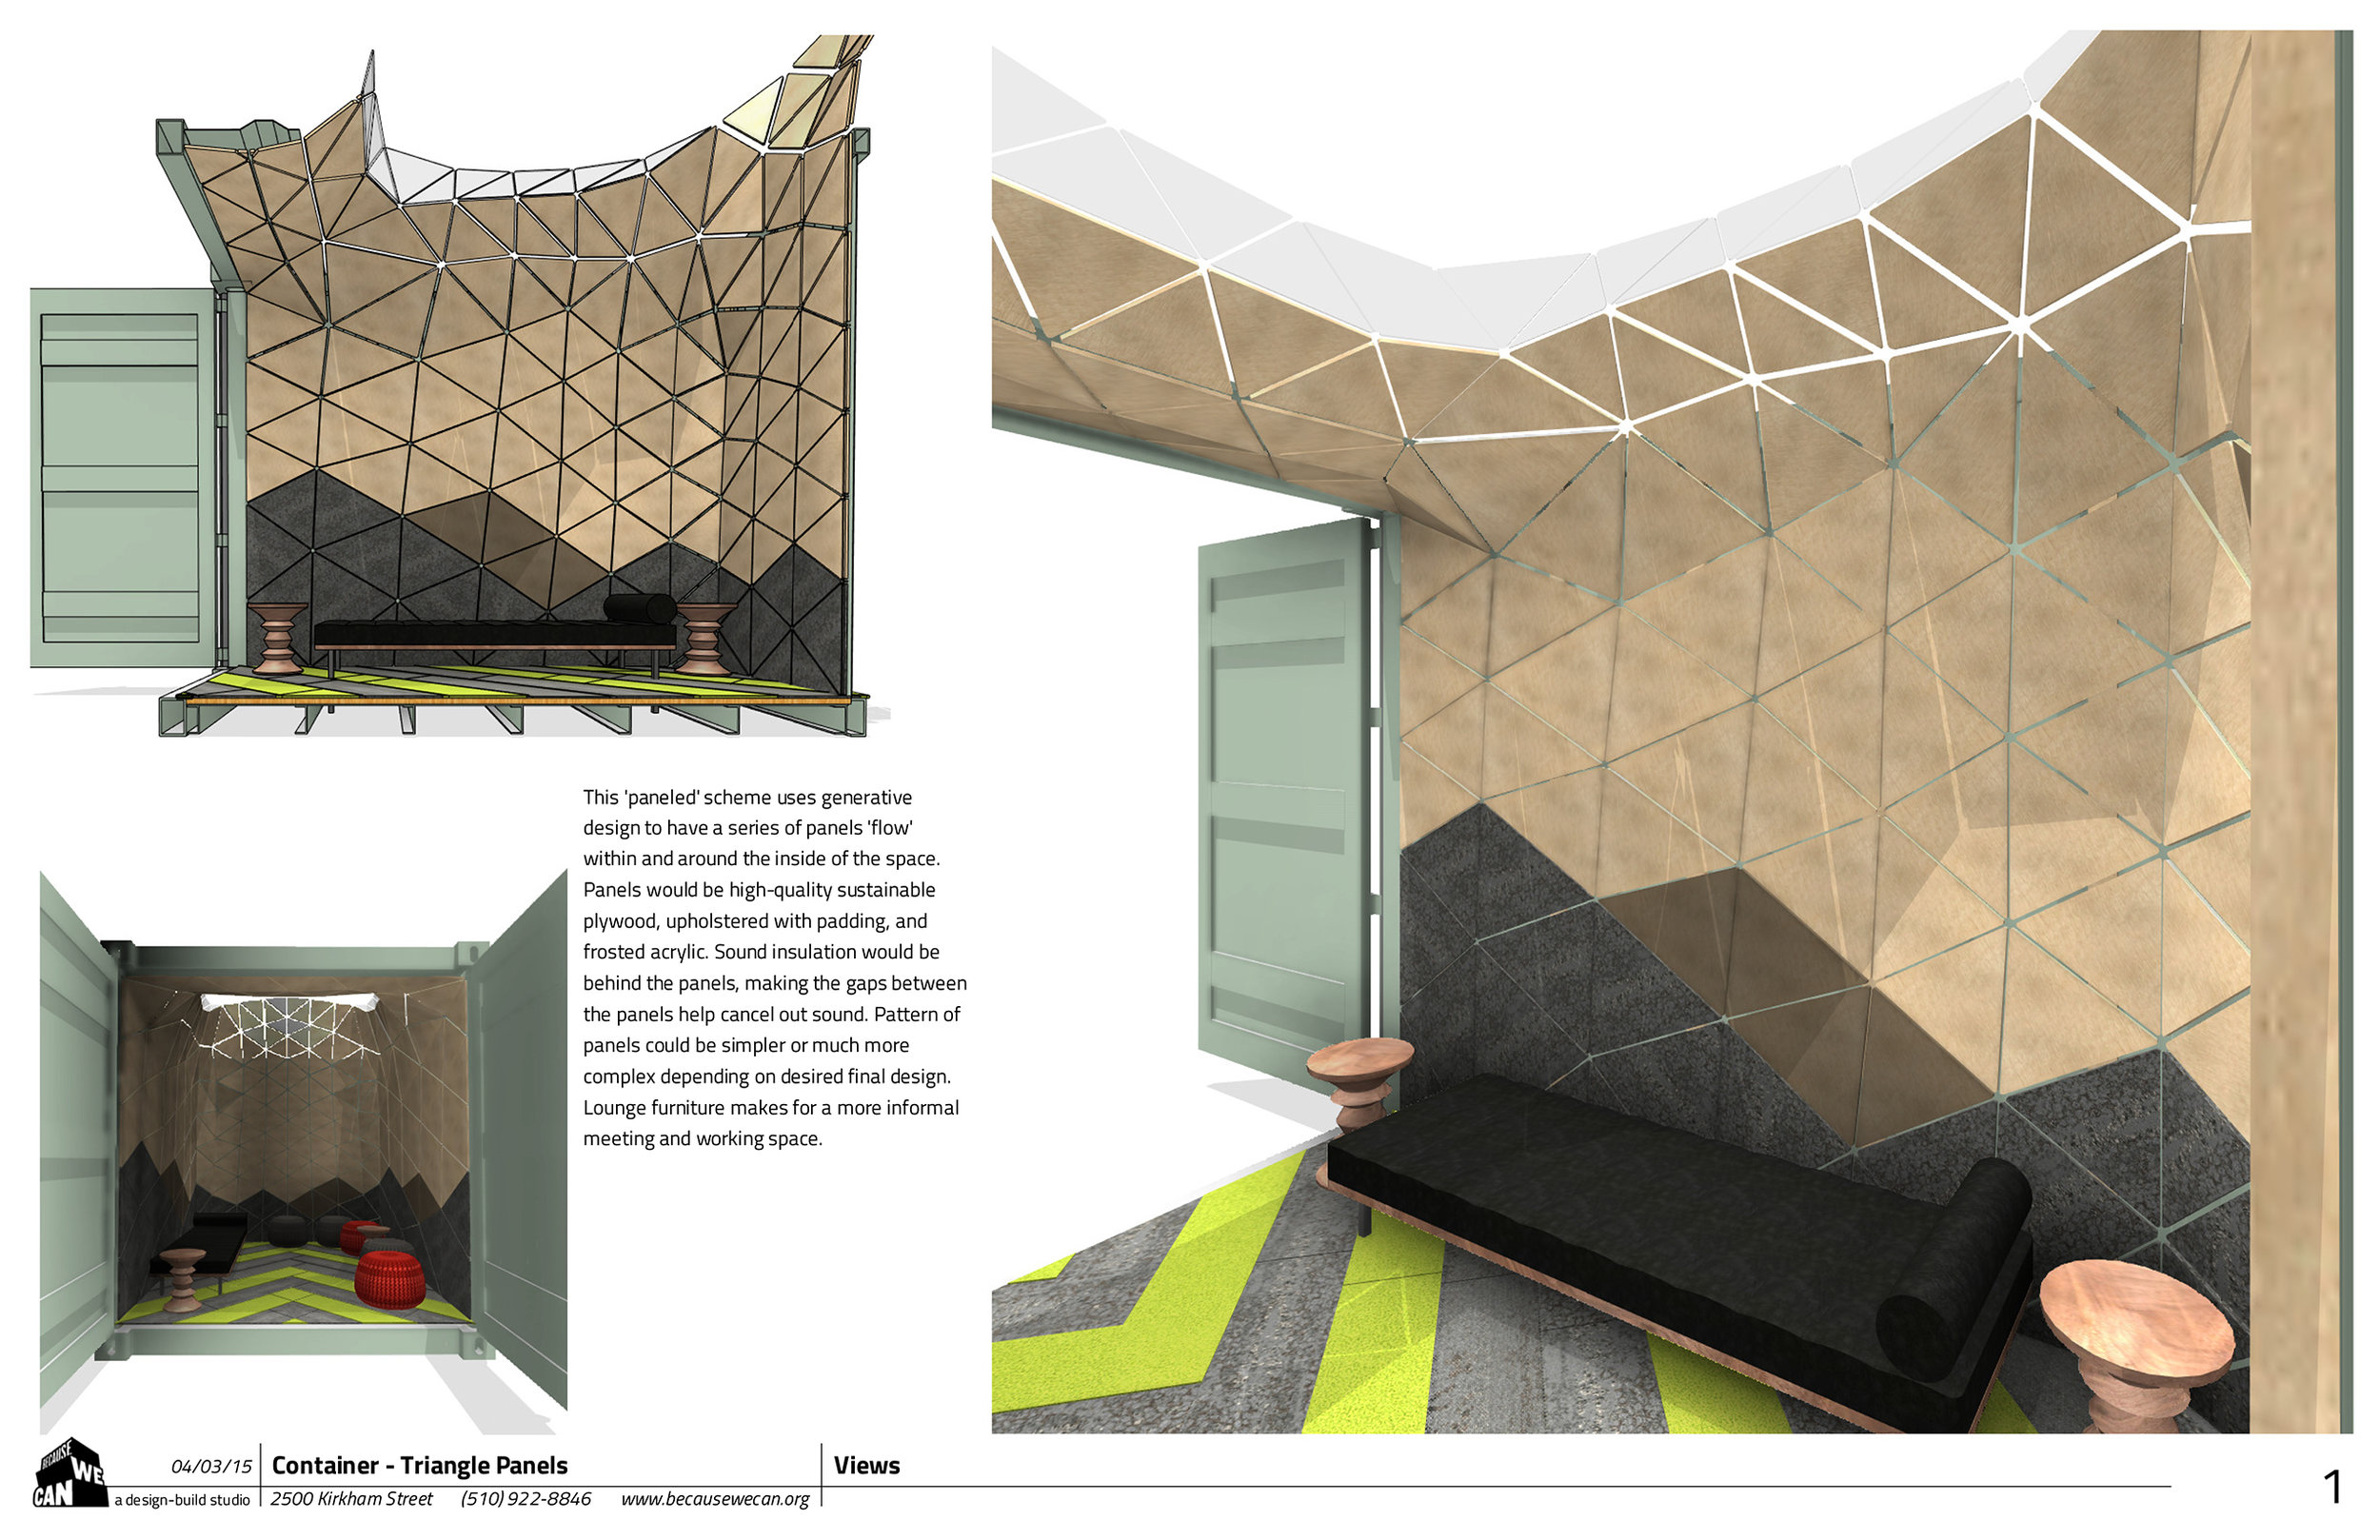 This 'paneled' scheme uses generative design to have a series of panels 'flow' within and around the inside of the space. Sound insulation behind the panels, making the gaps between the panels help cancel out sound.